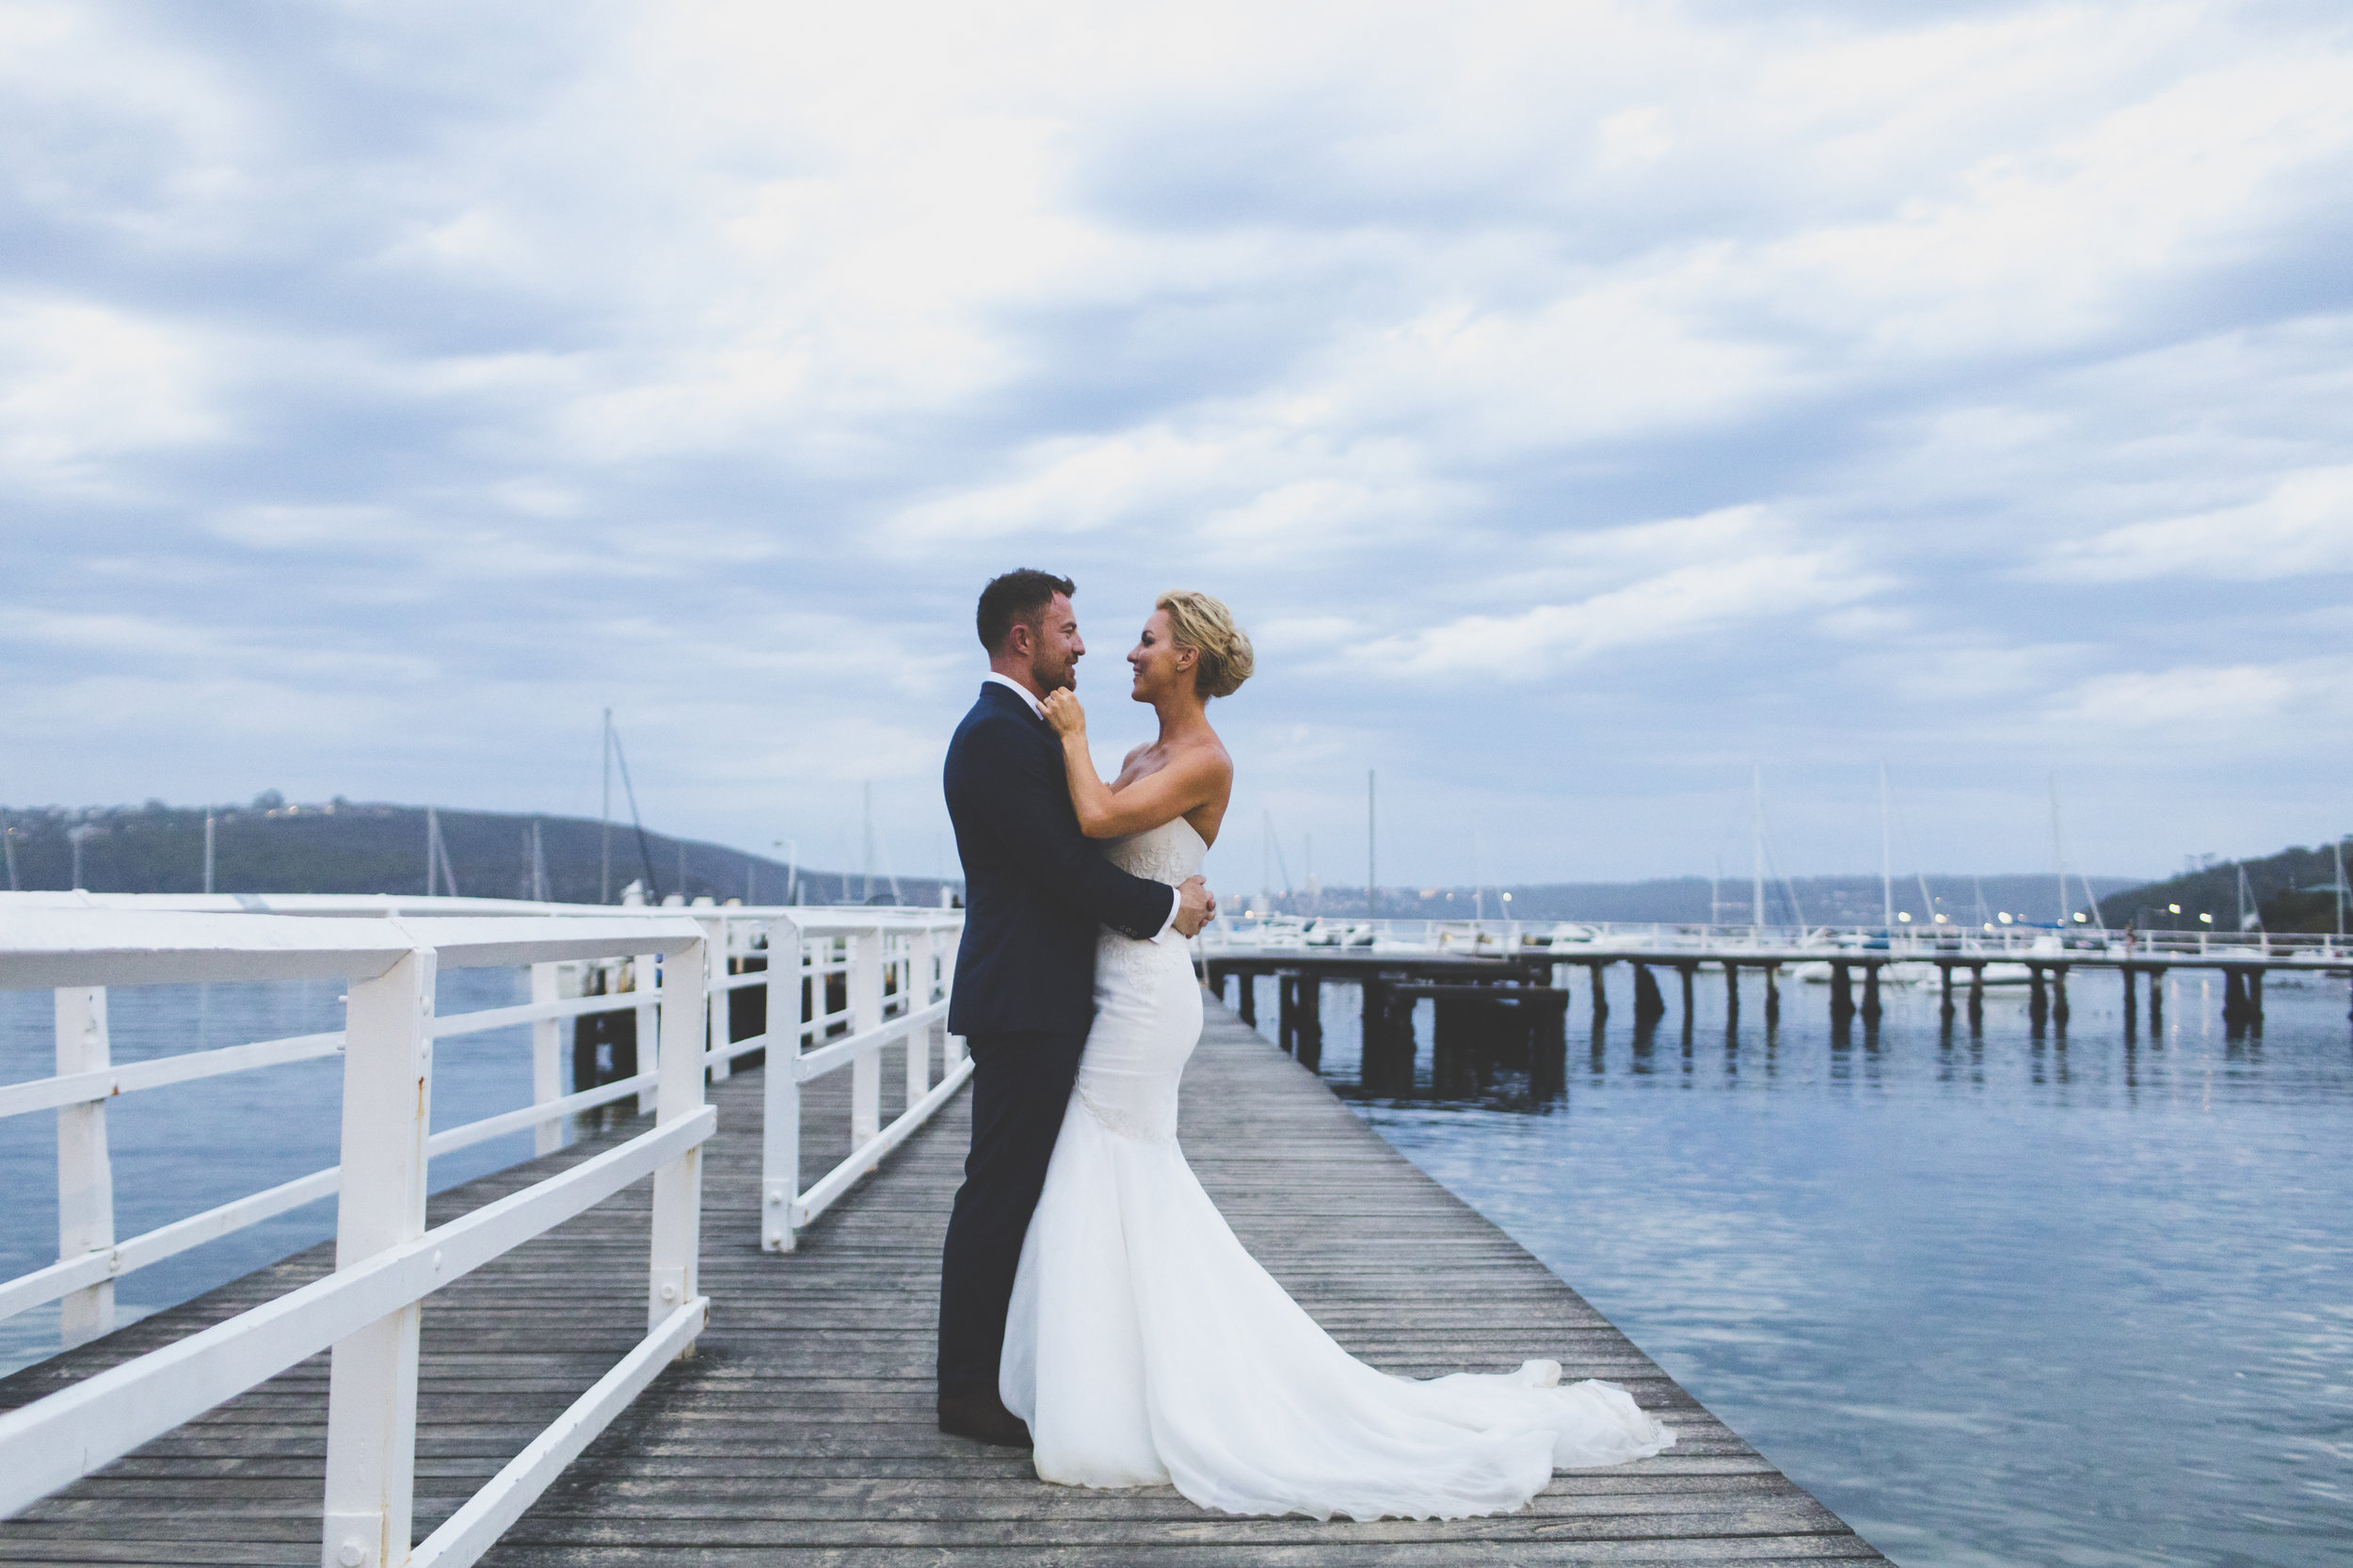 NATALIE AND JAMES - Simply put, there is no one in the world we'd rather have planned the biggest day of our lives than Samantha.She has an unbelievable eye for style and leaves absolutely no stone unturned for any aspect of the day no matter how small it may seem.